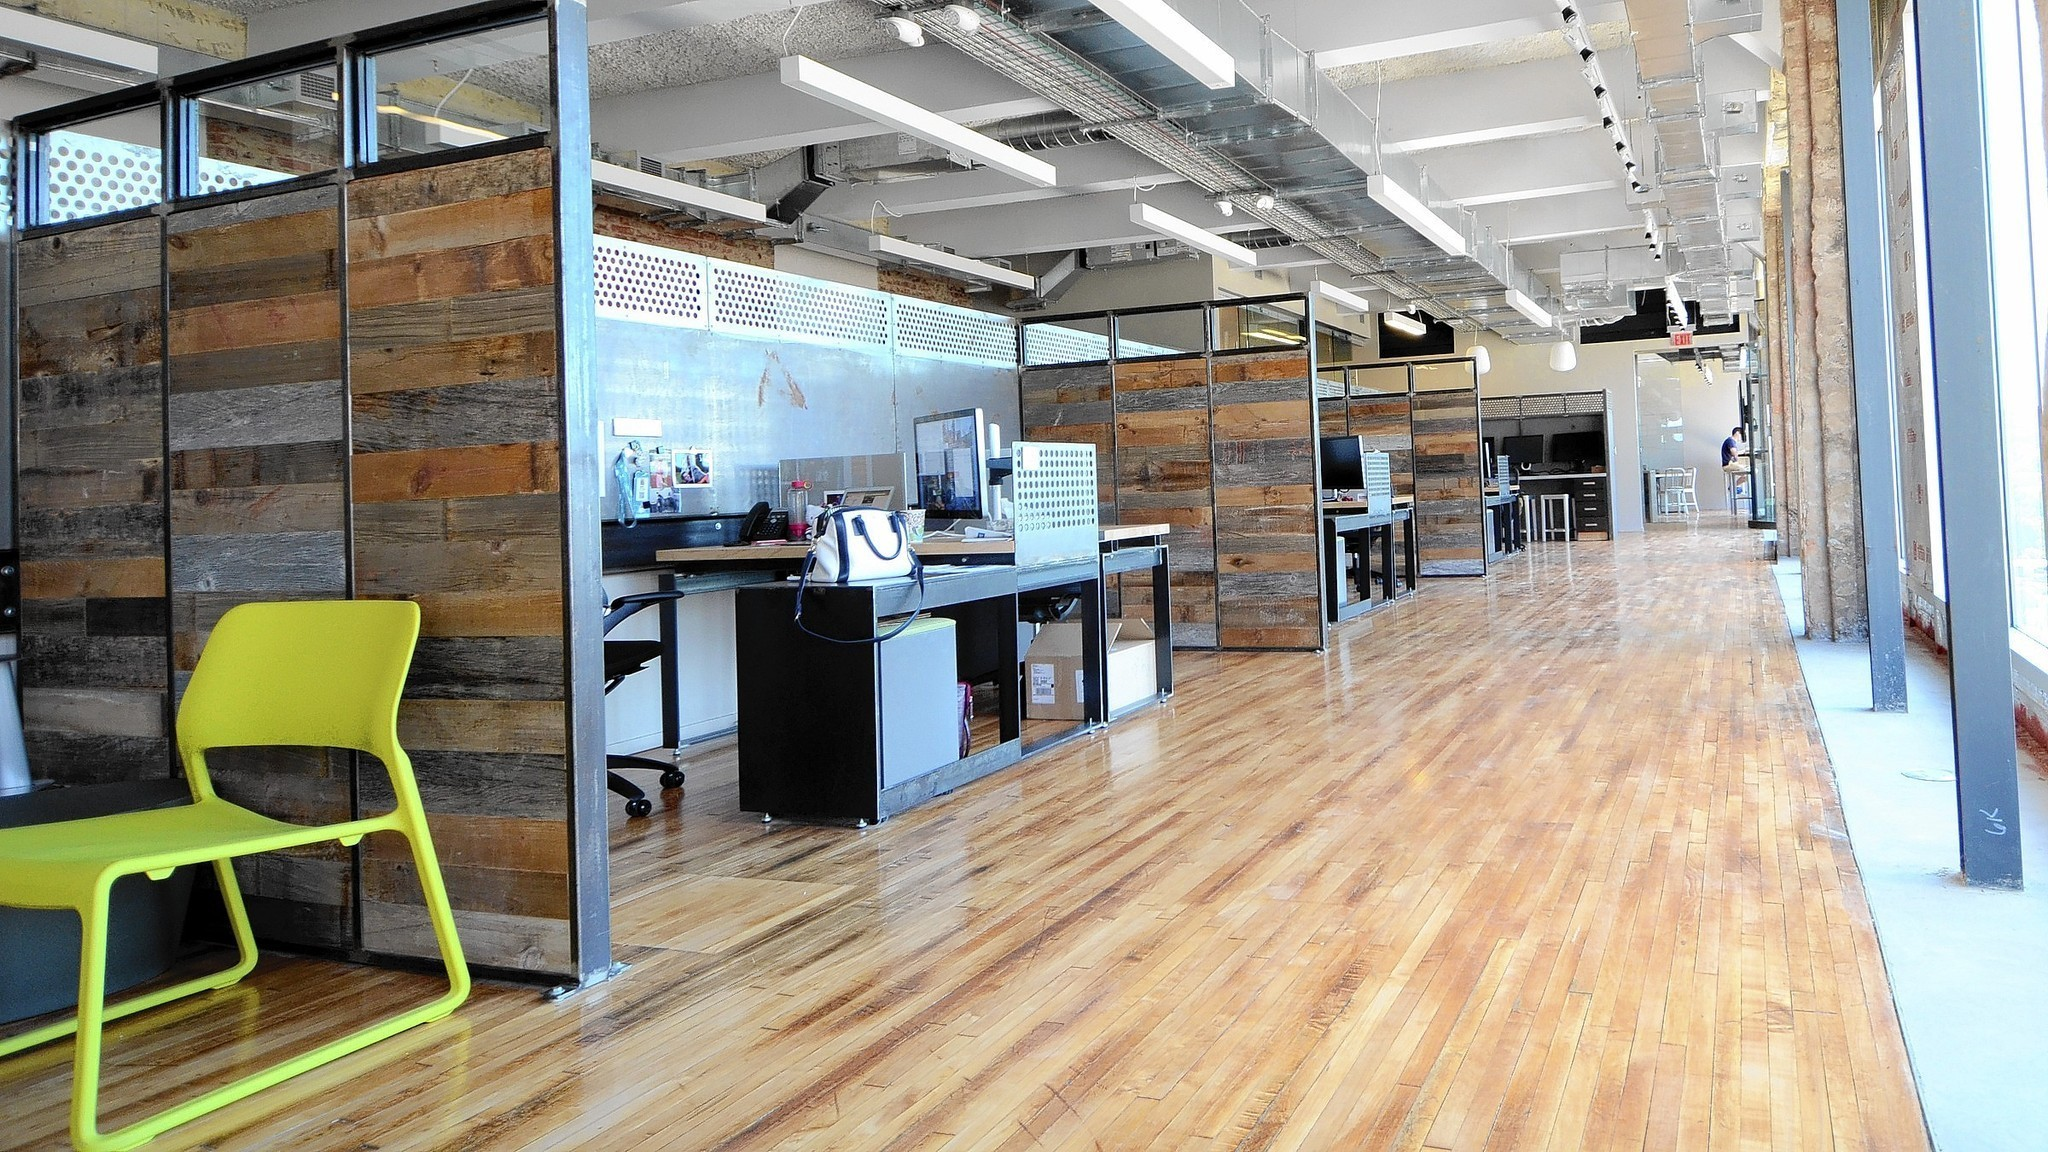 Charming Trifecta Moves Into Allentownu0027s Schoenu0027s Furniture Building   Lehigh Valley  Business Cycle